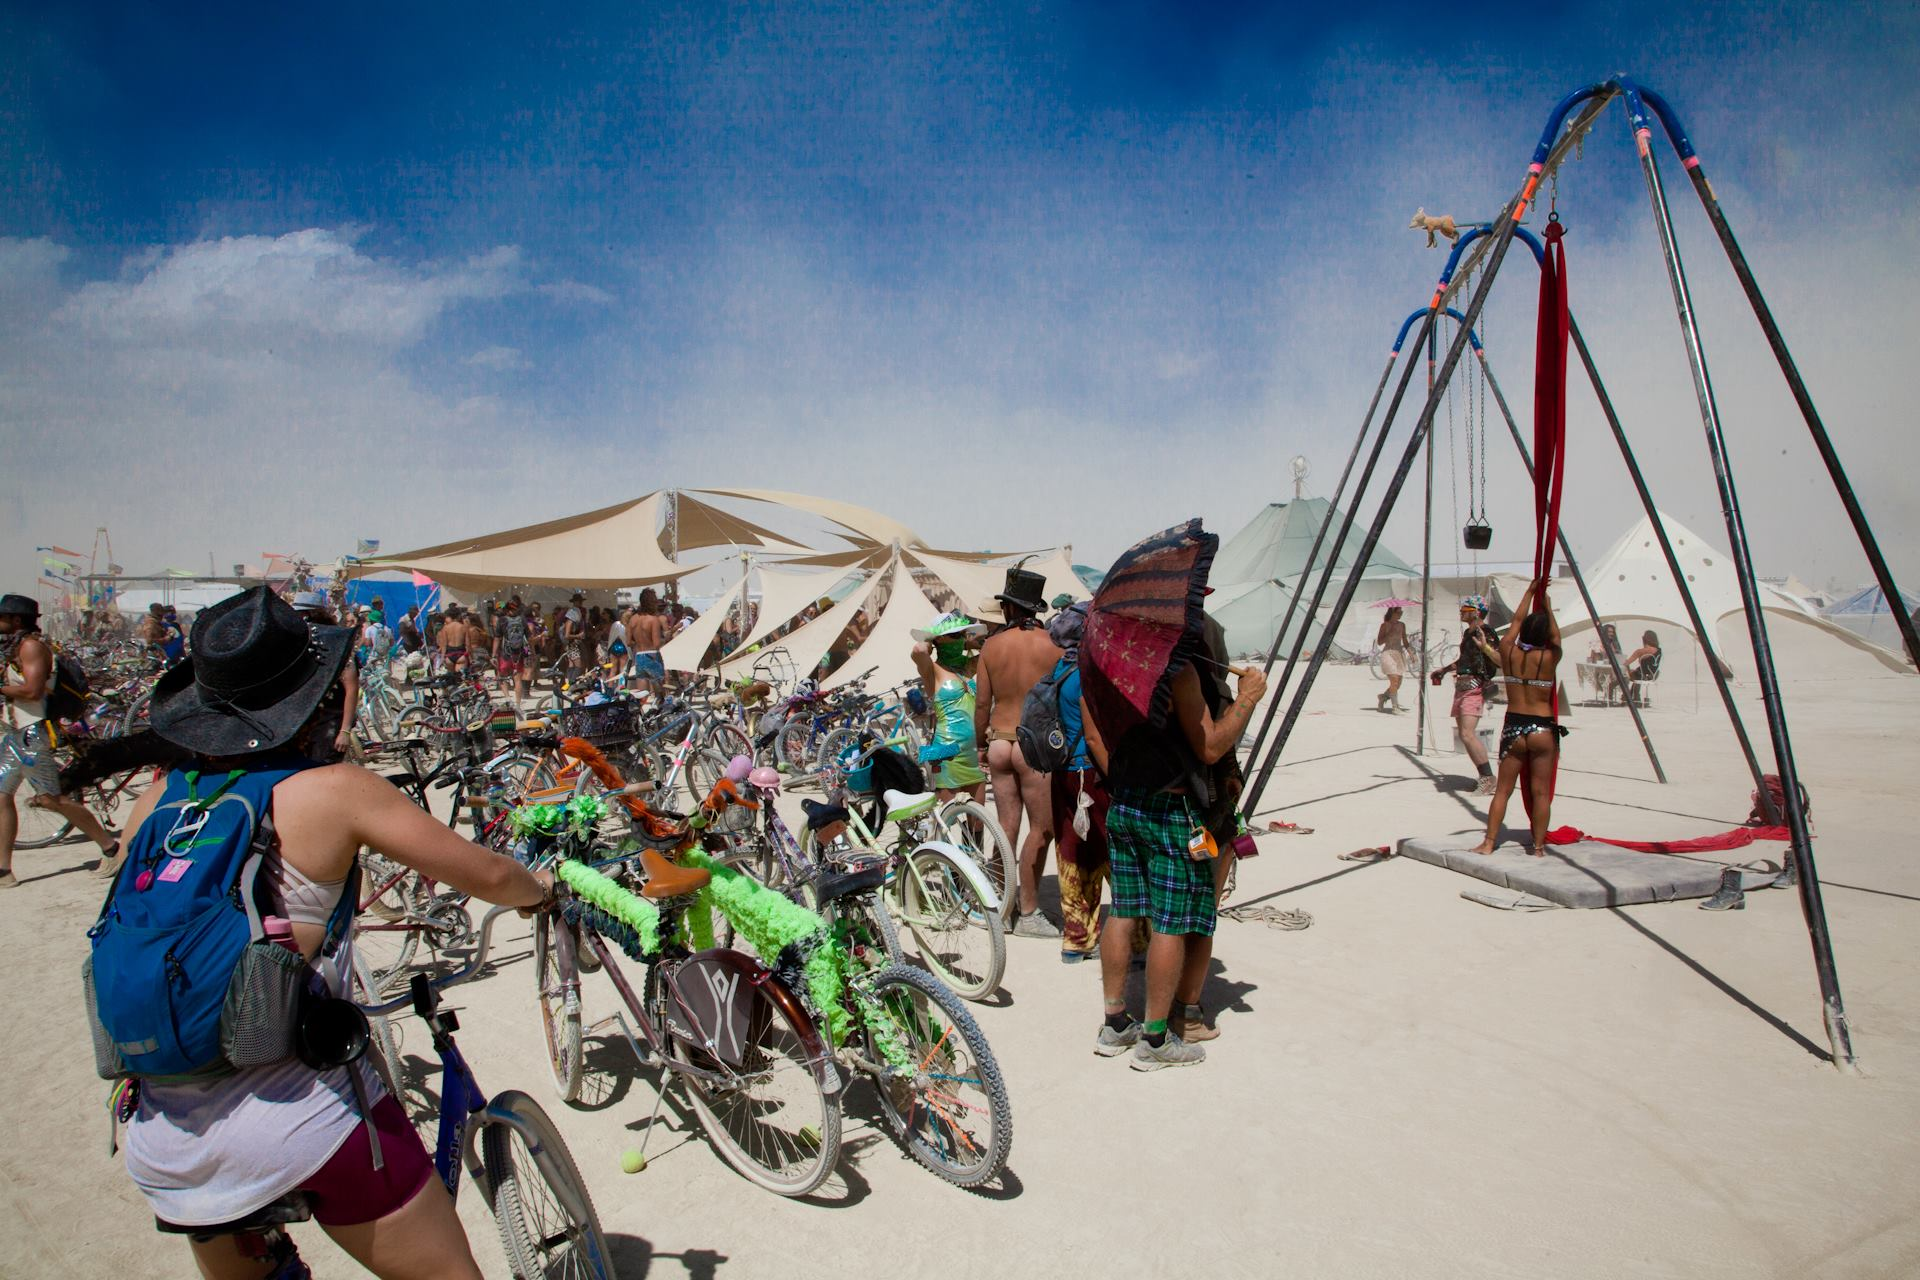 Magic of Burning Man